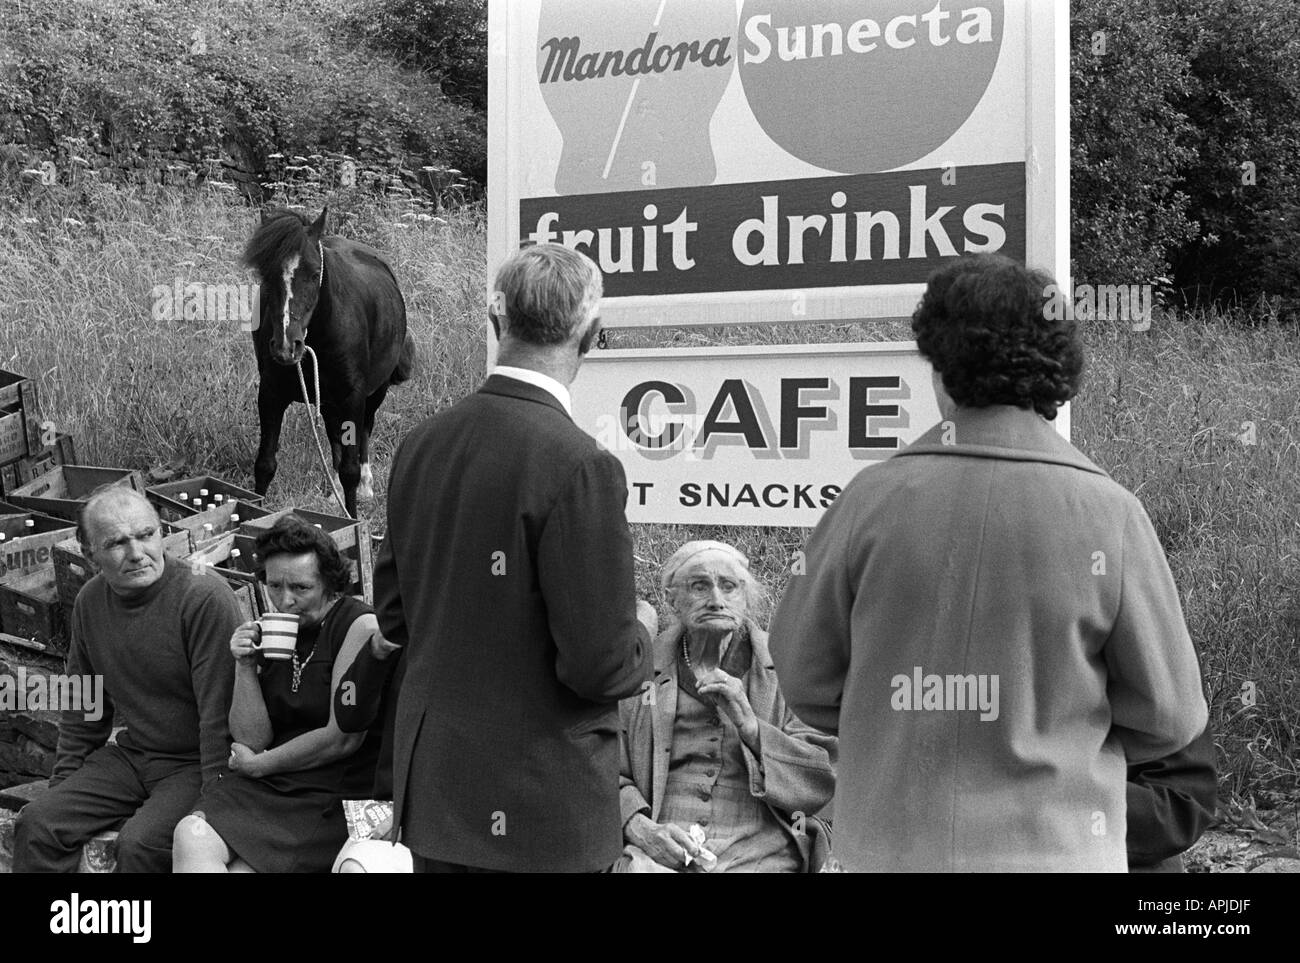 Family outing 1970s drinking a cup of tea under outside